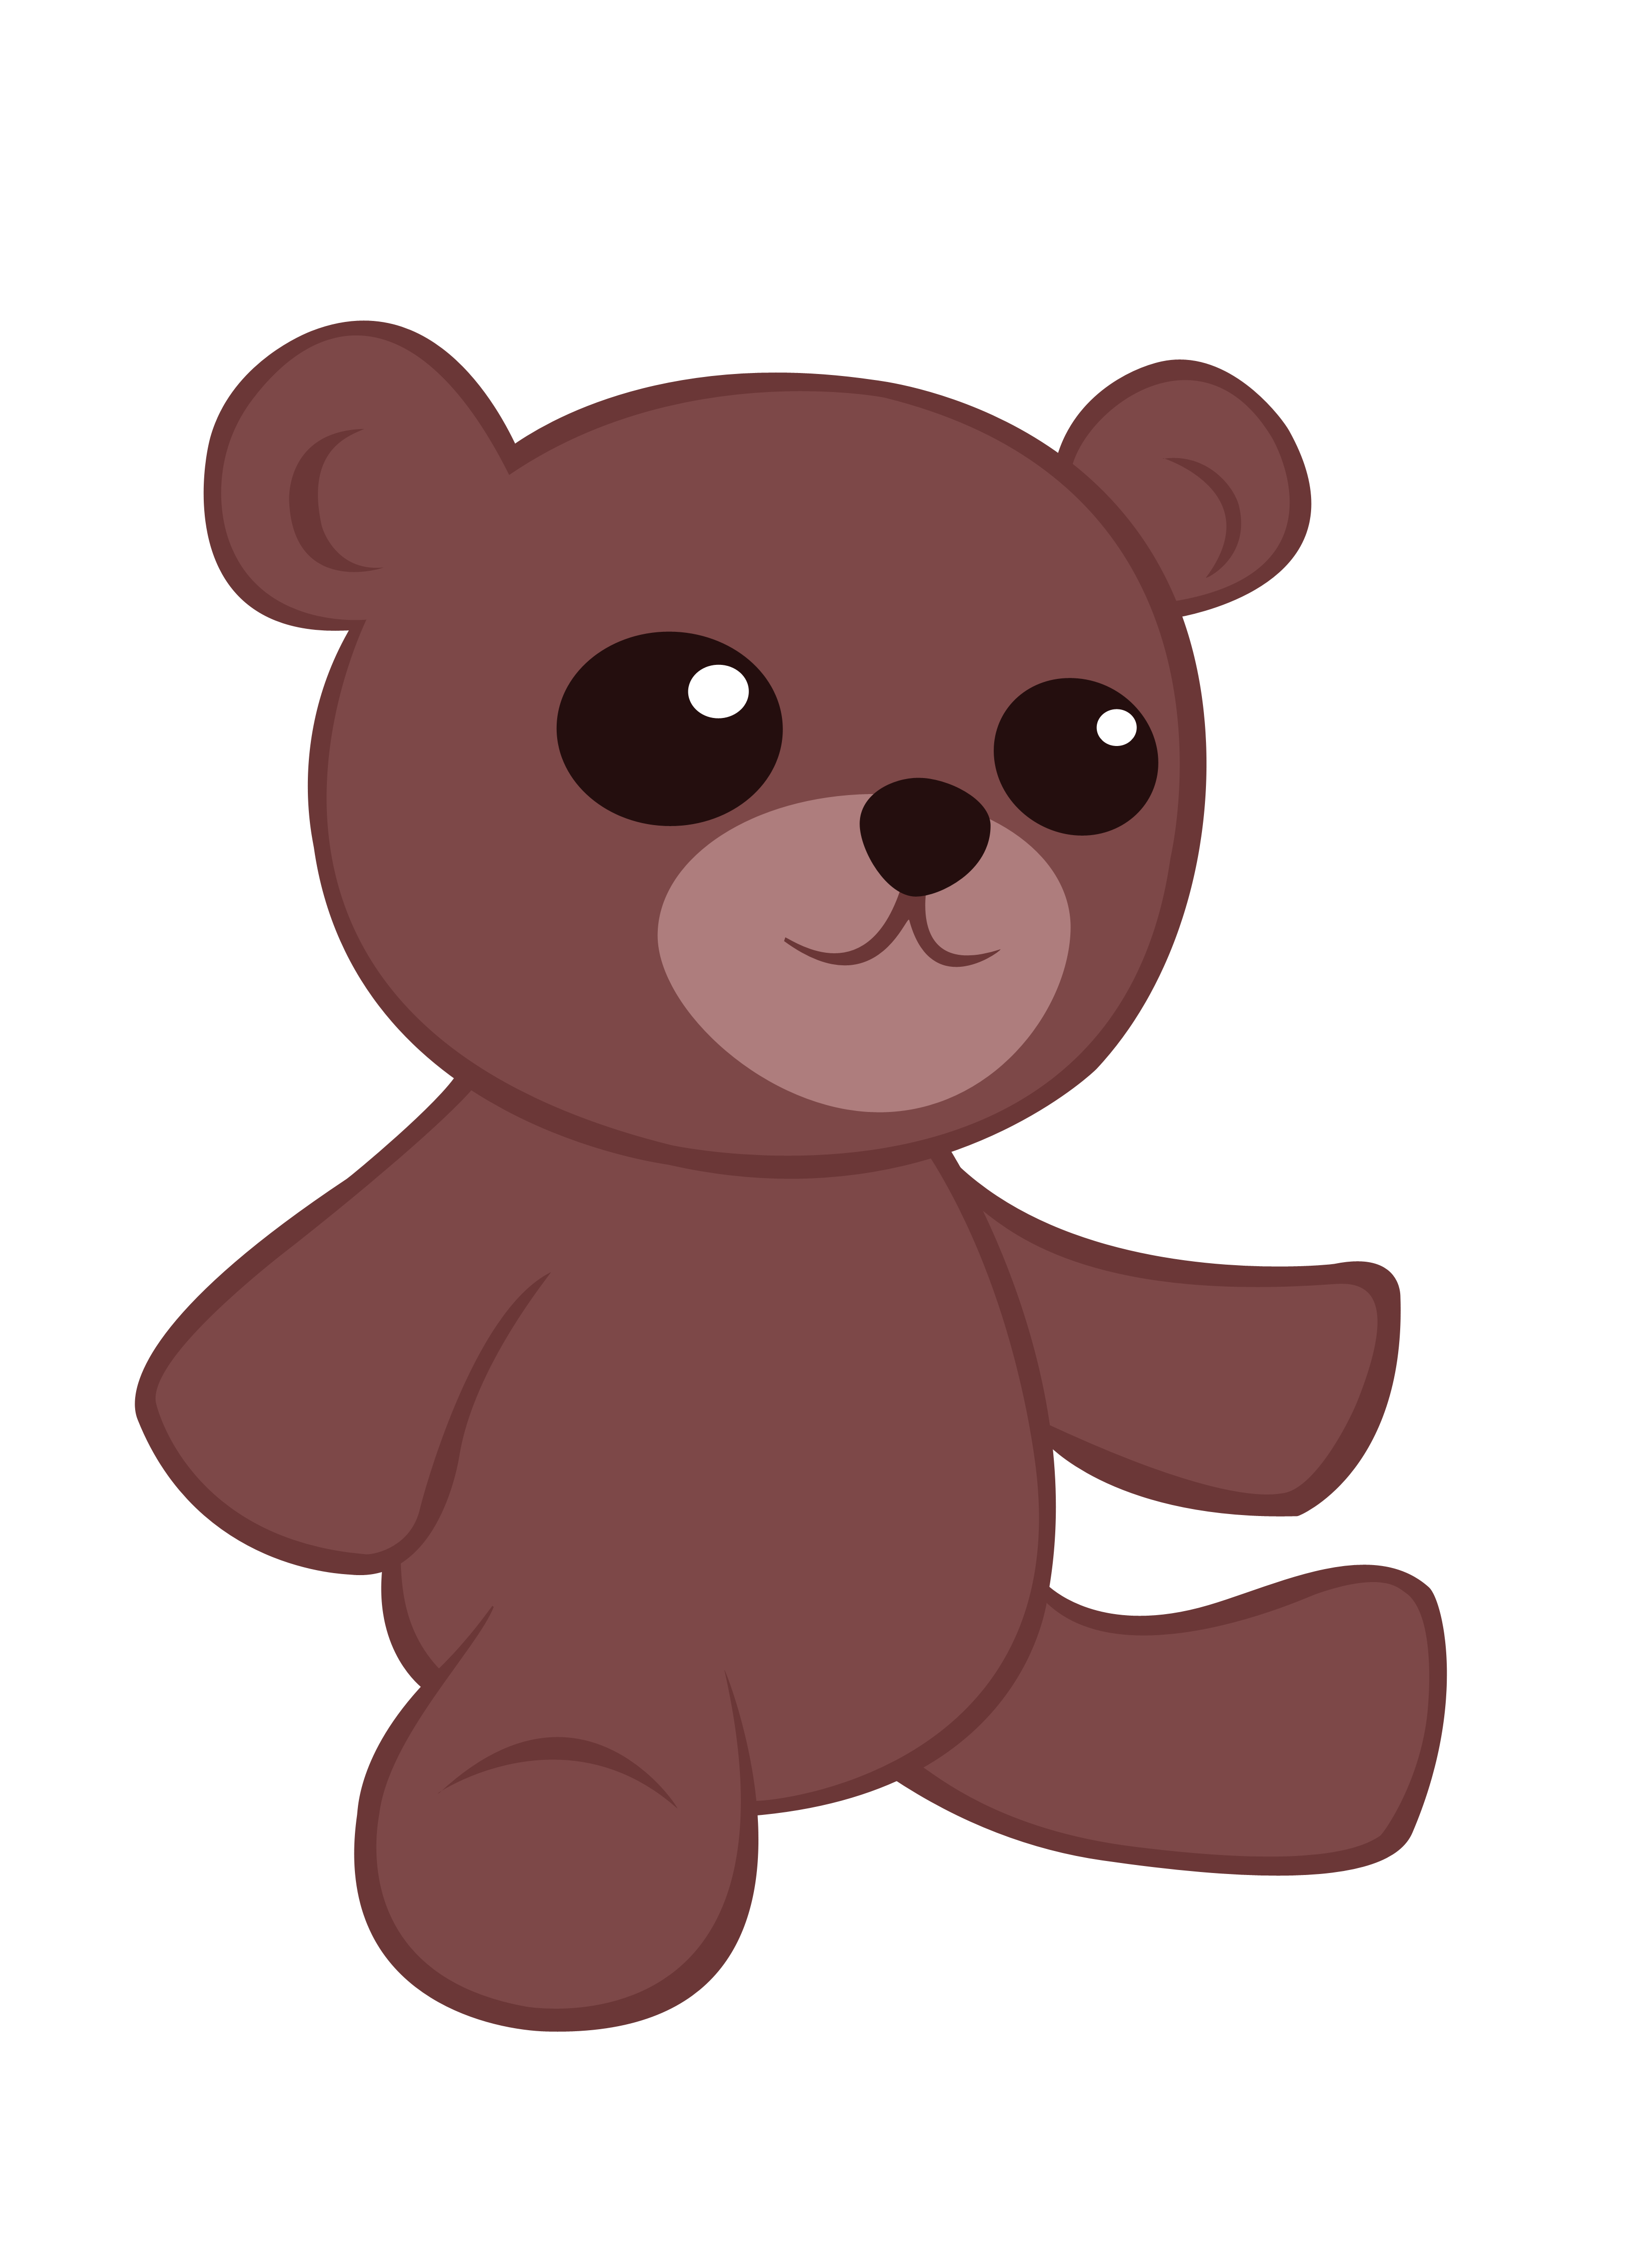 Bear vector png. Teddy by sofunnyguy on